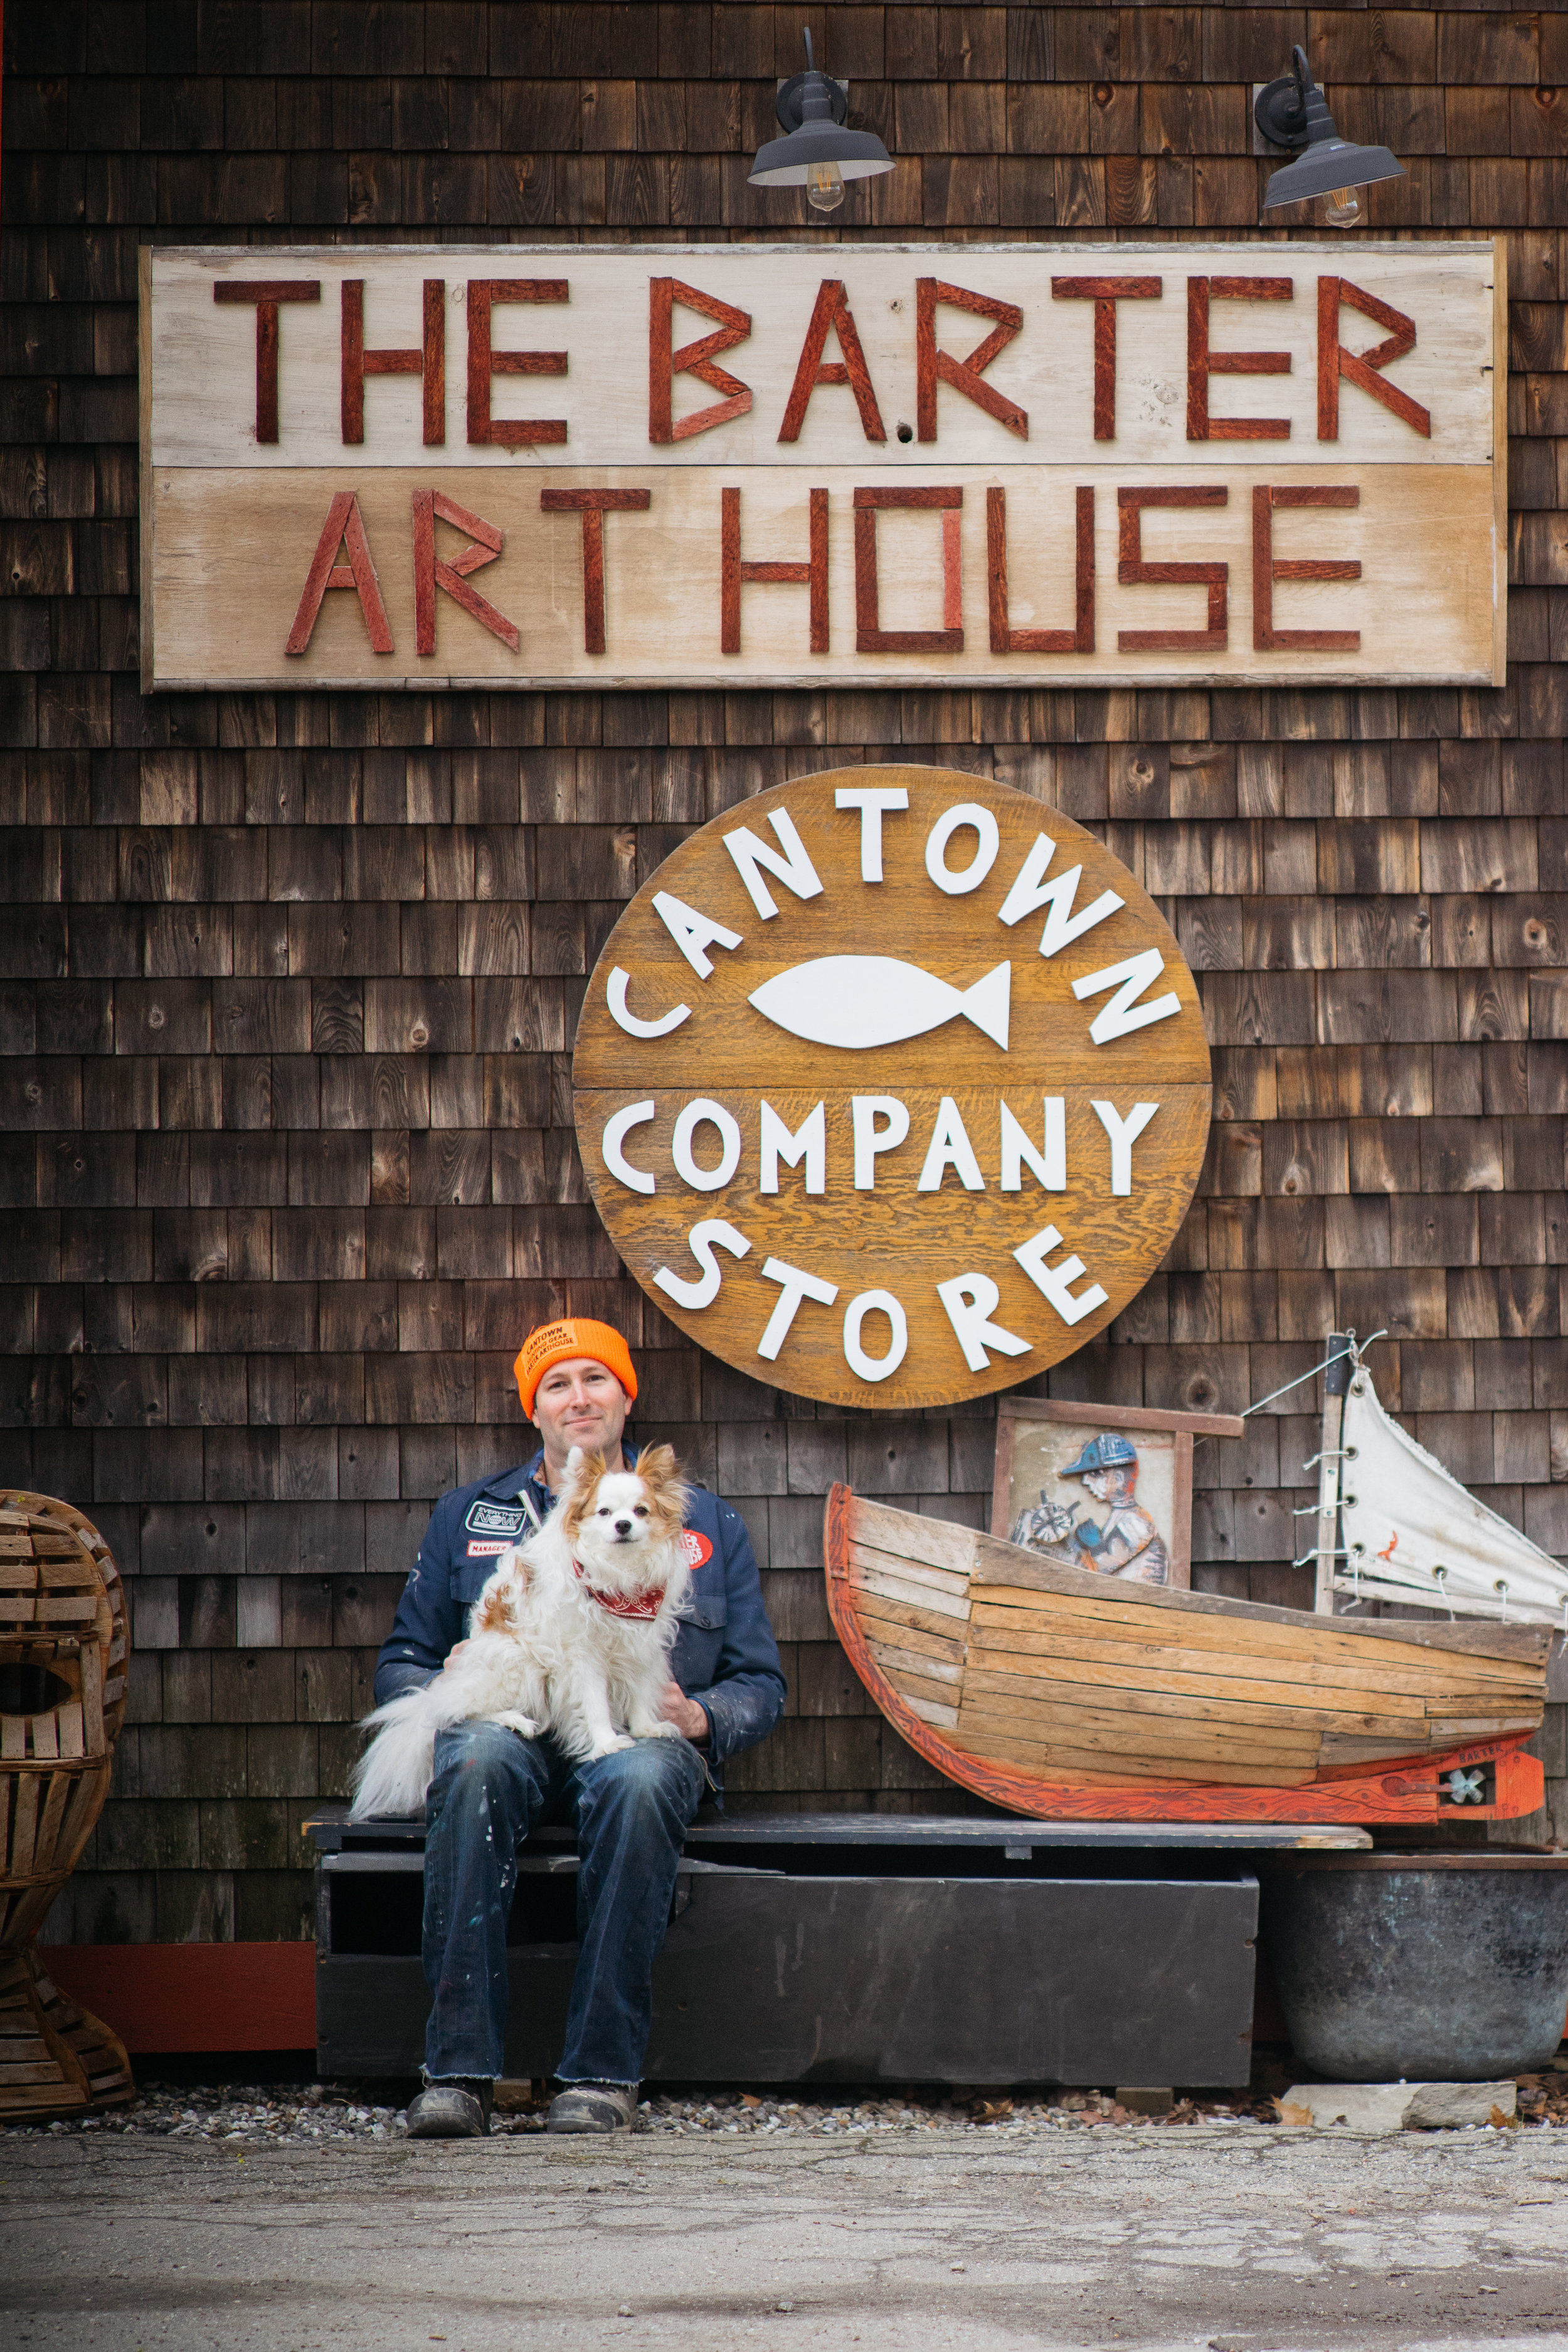 Cantown Company Store art installation opening June 1st 2019 with an opening reception on June 29th from 5 to 8pm. Cantown is a collaboration of father and son artists Matt and Philip Barter. The last Maine fish cannery closed in Prospect harbor nearly 10 years ago this is a tribute to those who worked in those factories.